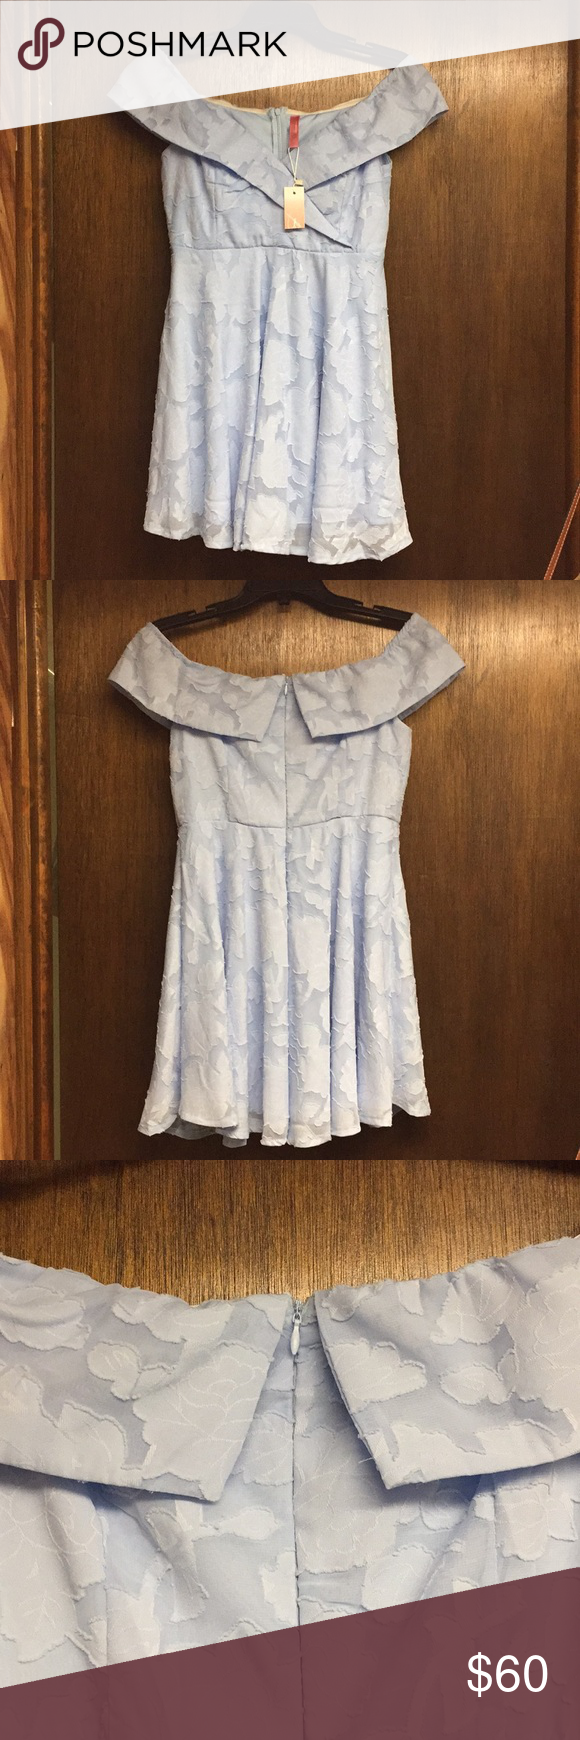 Baby blue floral dress nwt blue floral dresses wedding guest